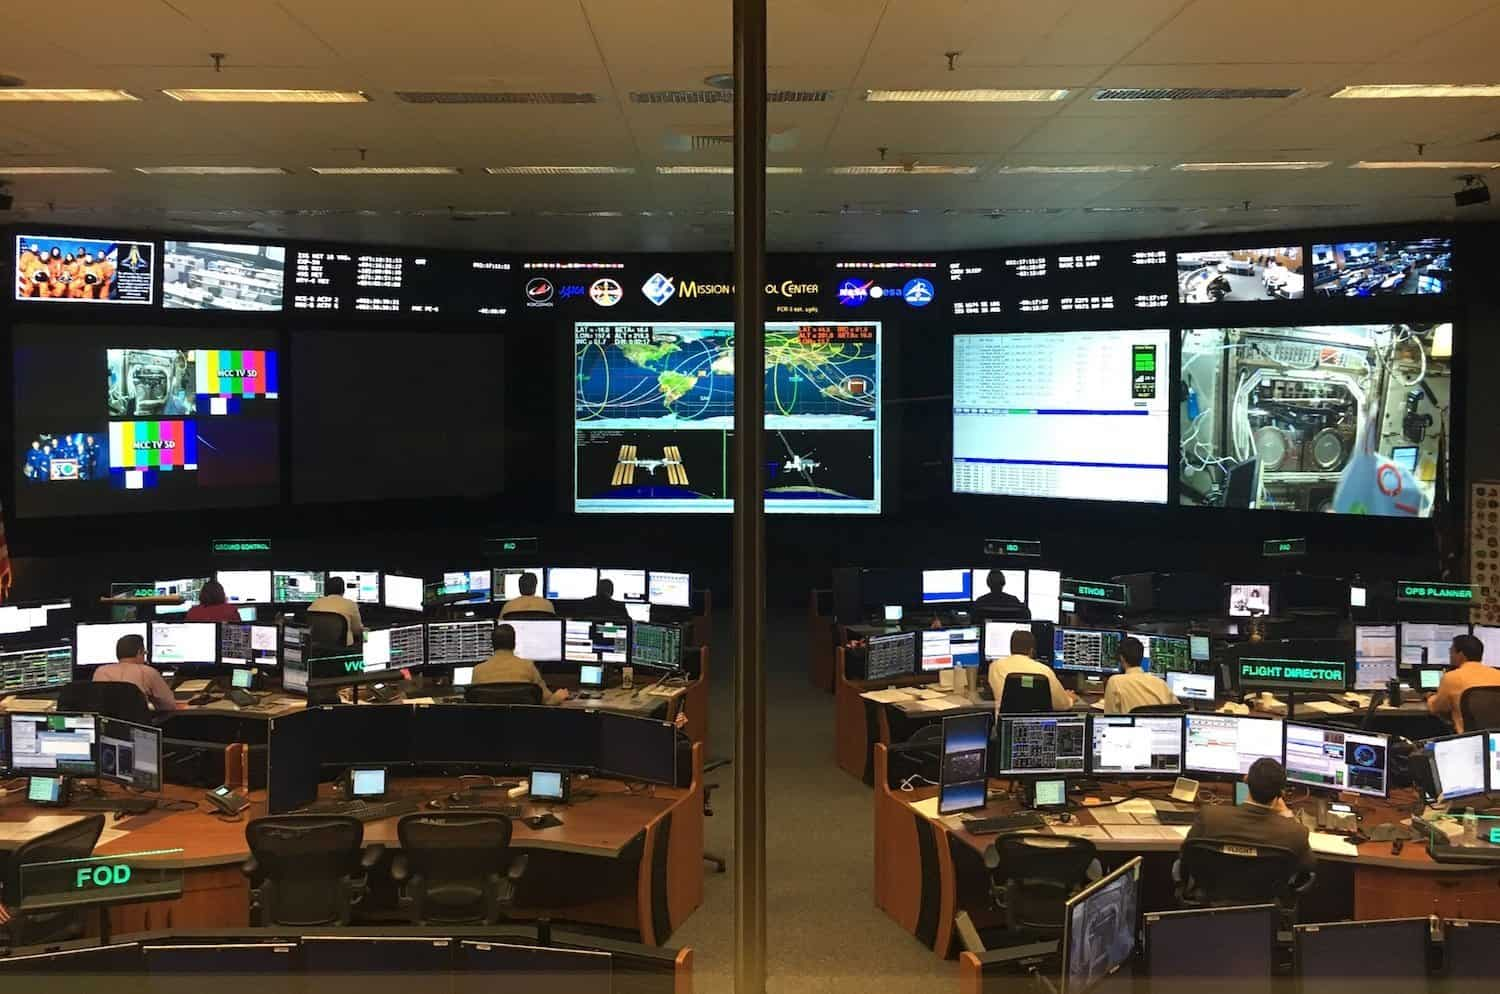 Mission Control at Johnson Space Center